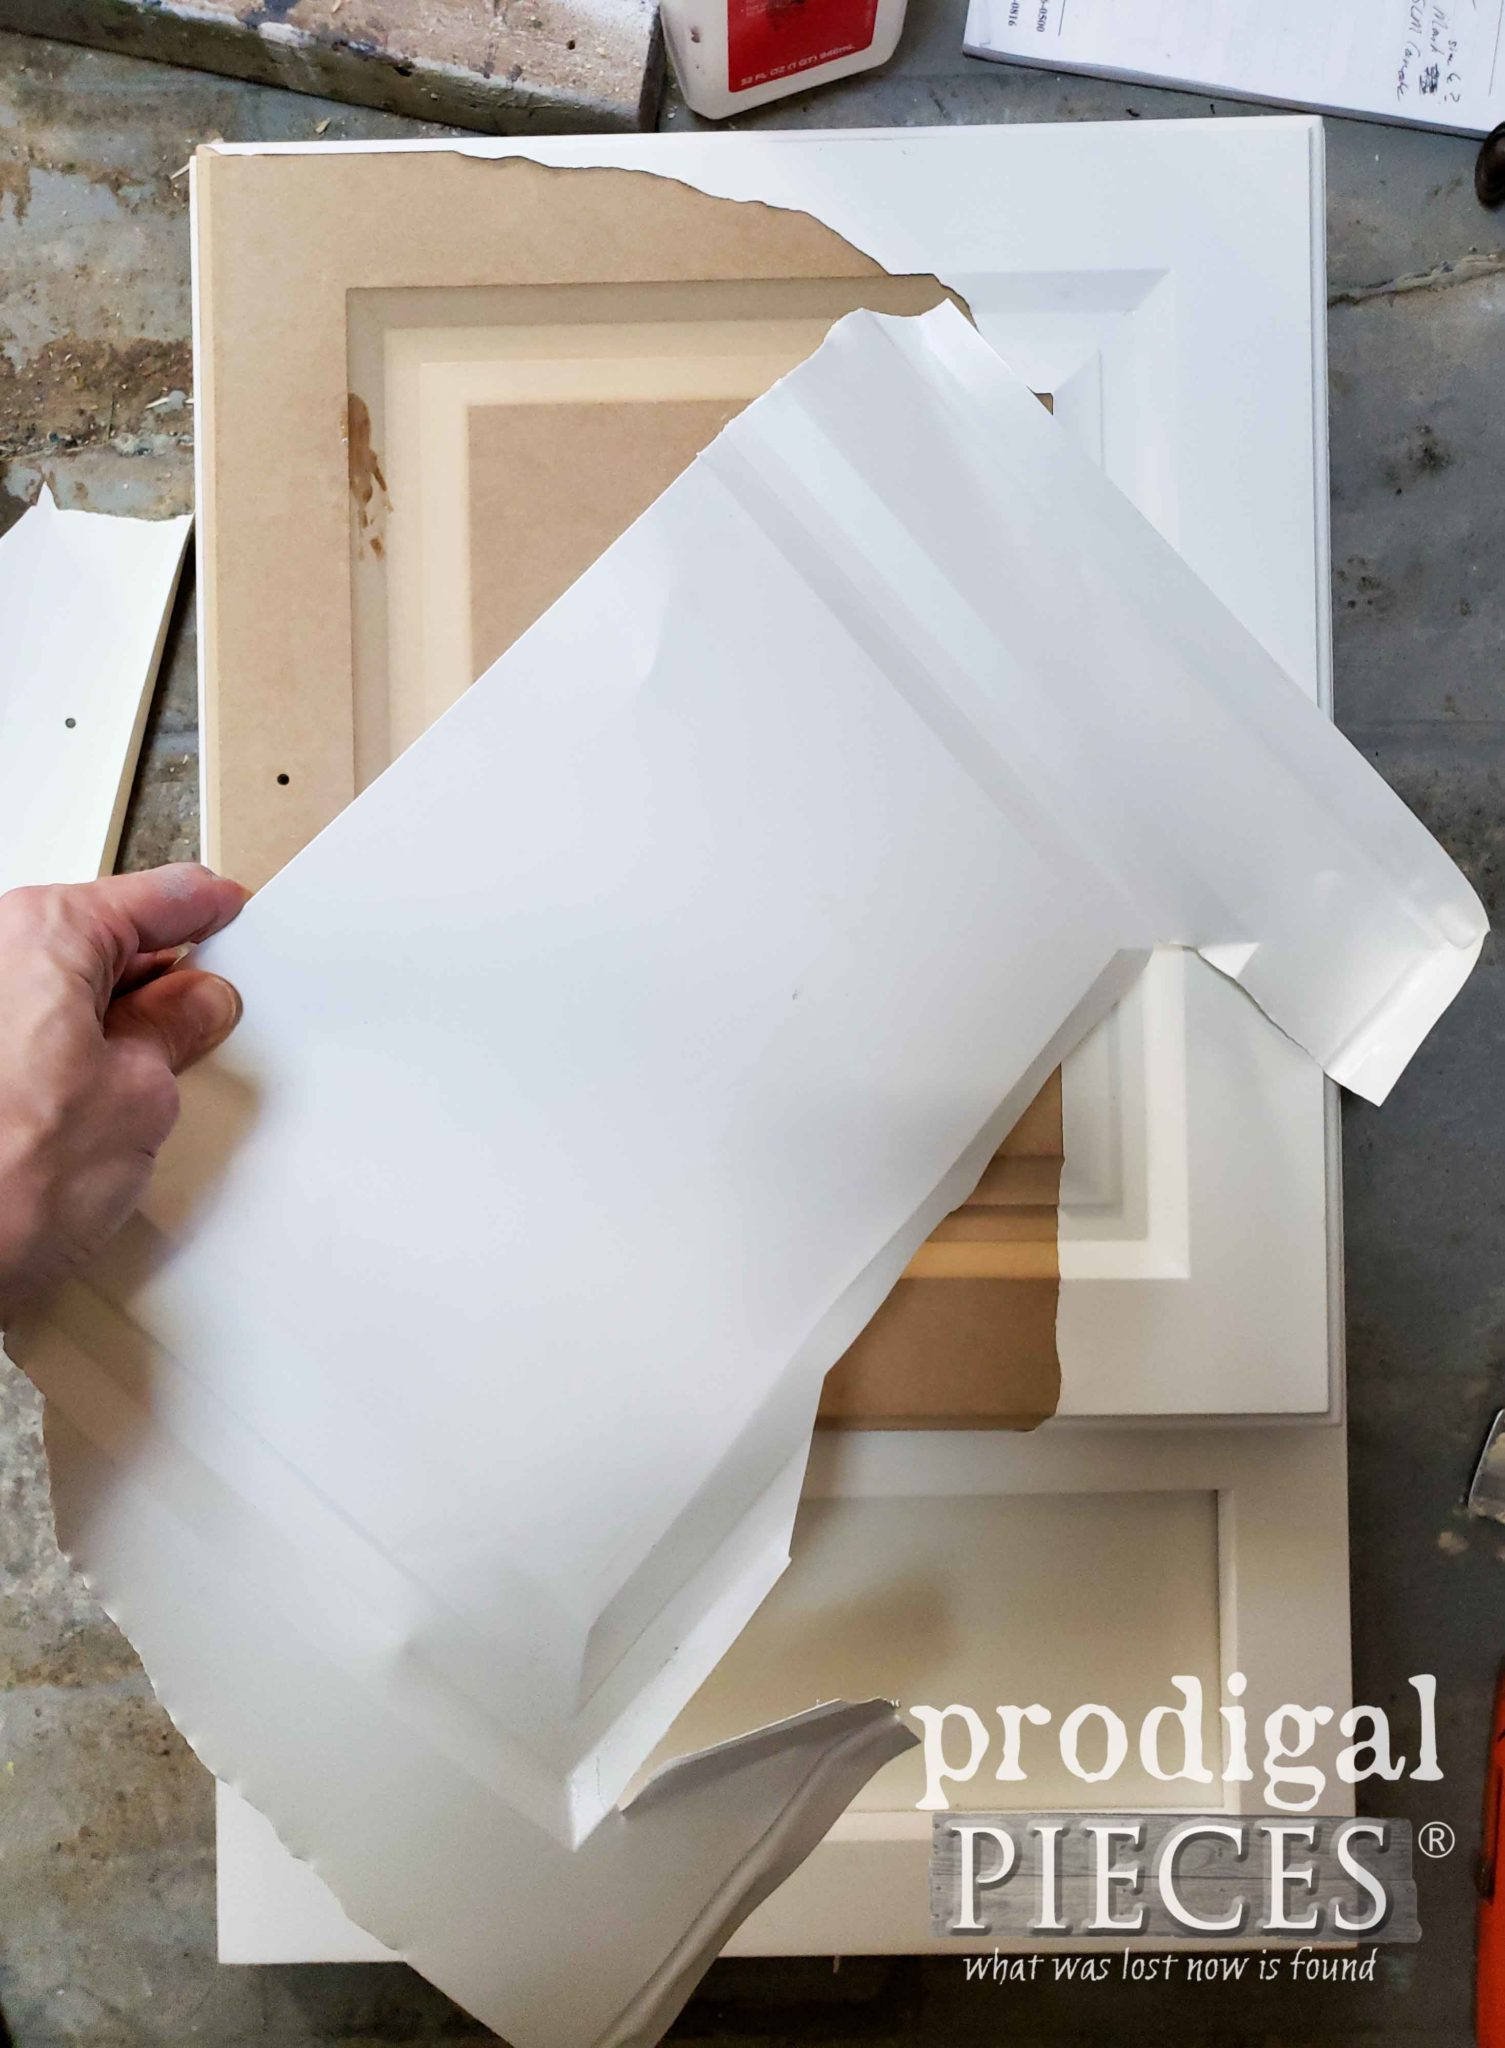 How to Remove Laminate from Cabinet Doors | prodigalpieces.com